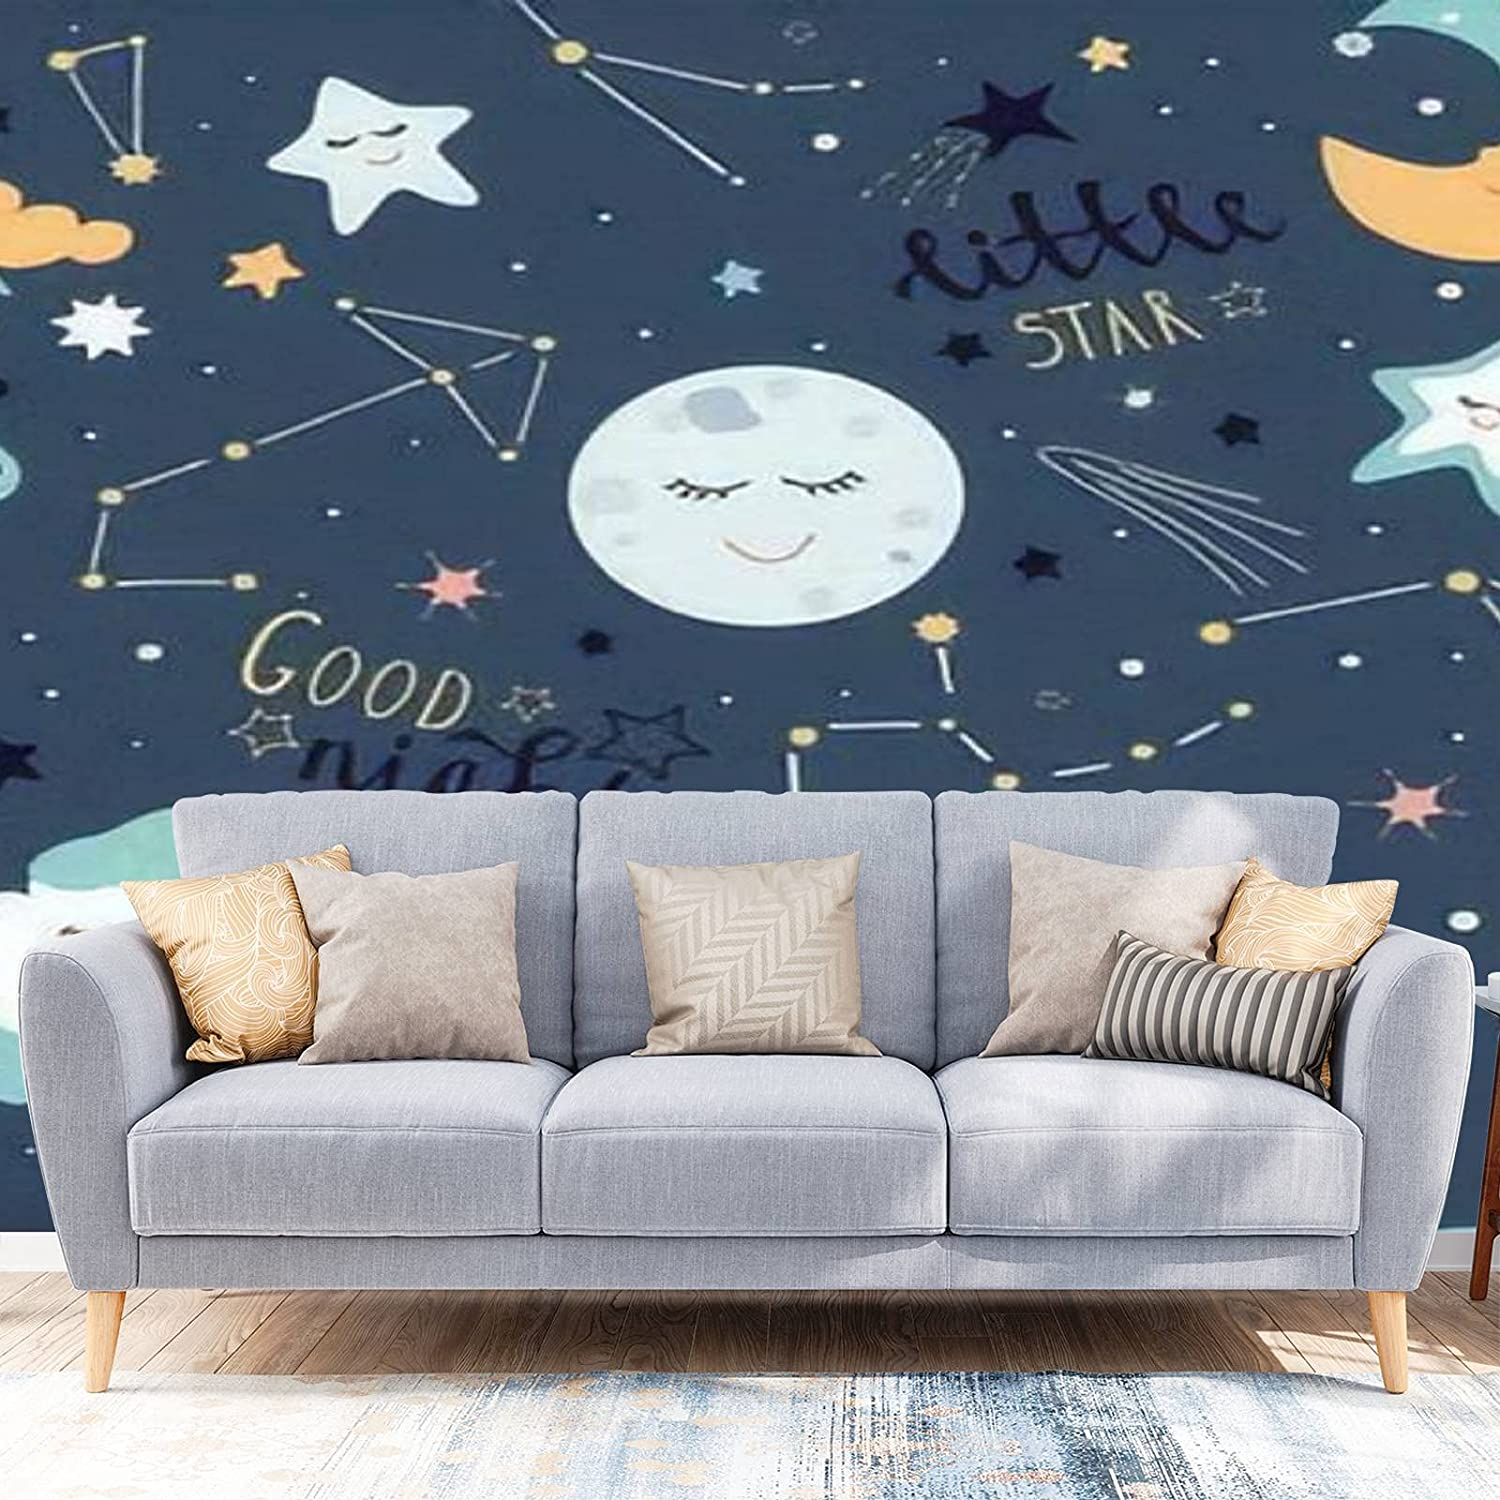 Wallpaper Peel and Recommendation Stick Kids Poster Max 56% OFF Space cluod Const Moon Star